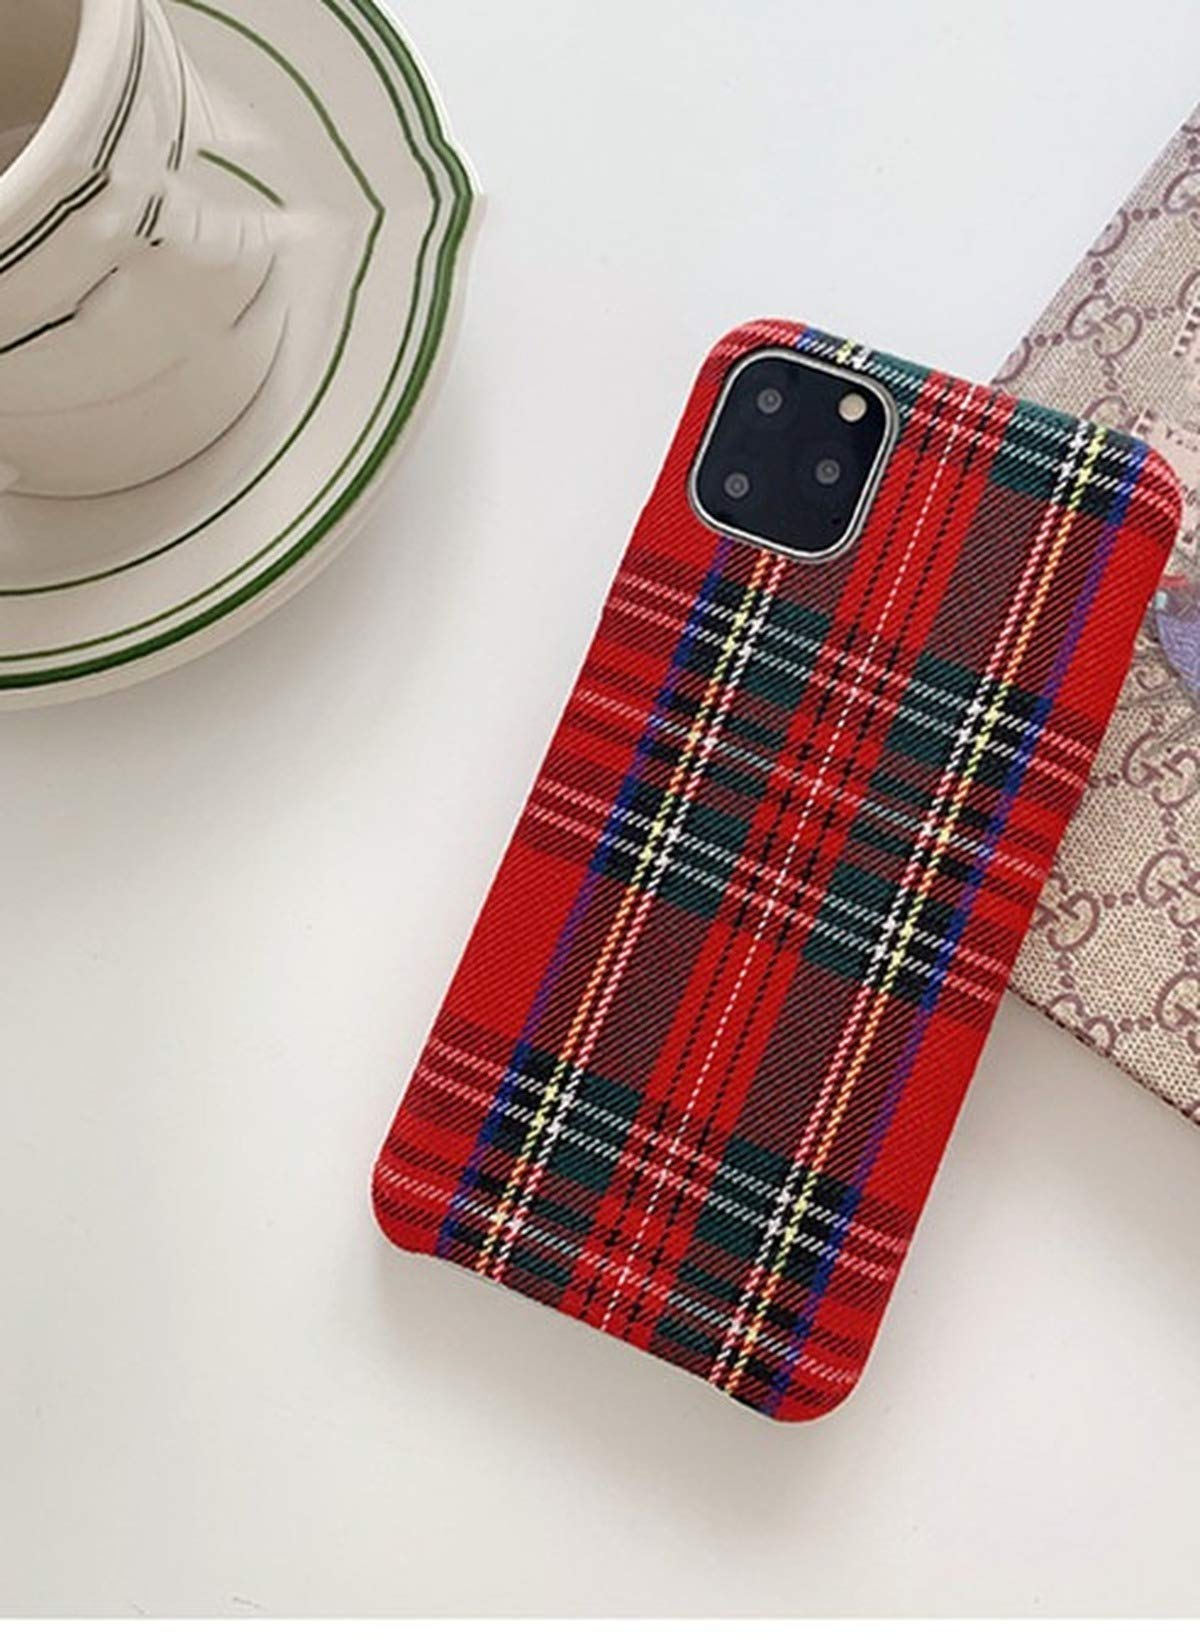 Mixneer Warm Flannel Plaid Cloth Phone Case Simple Plush Fabric Phone Case for iPhone X Xs Xsmax Xr 11 Pro Max 6s 7 8 Plus Cover (iPhone 7/8 Plus,red)